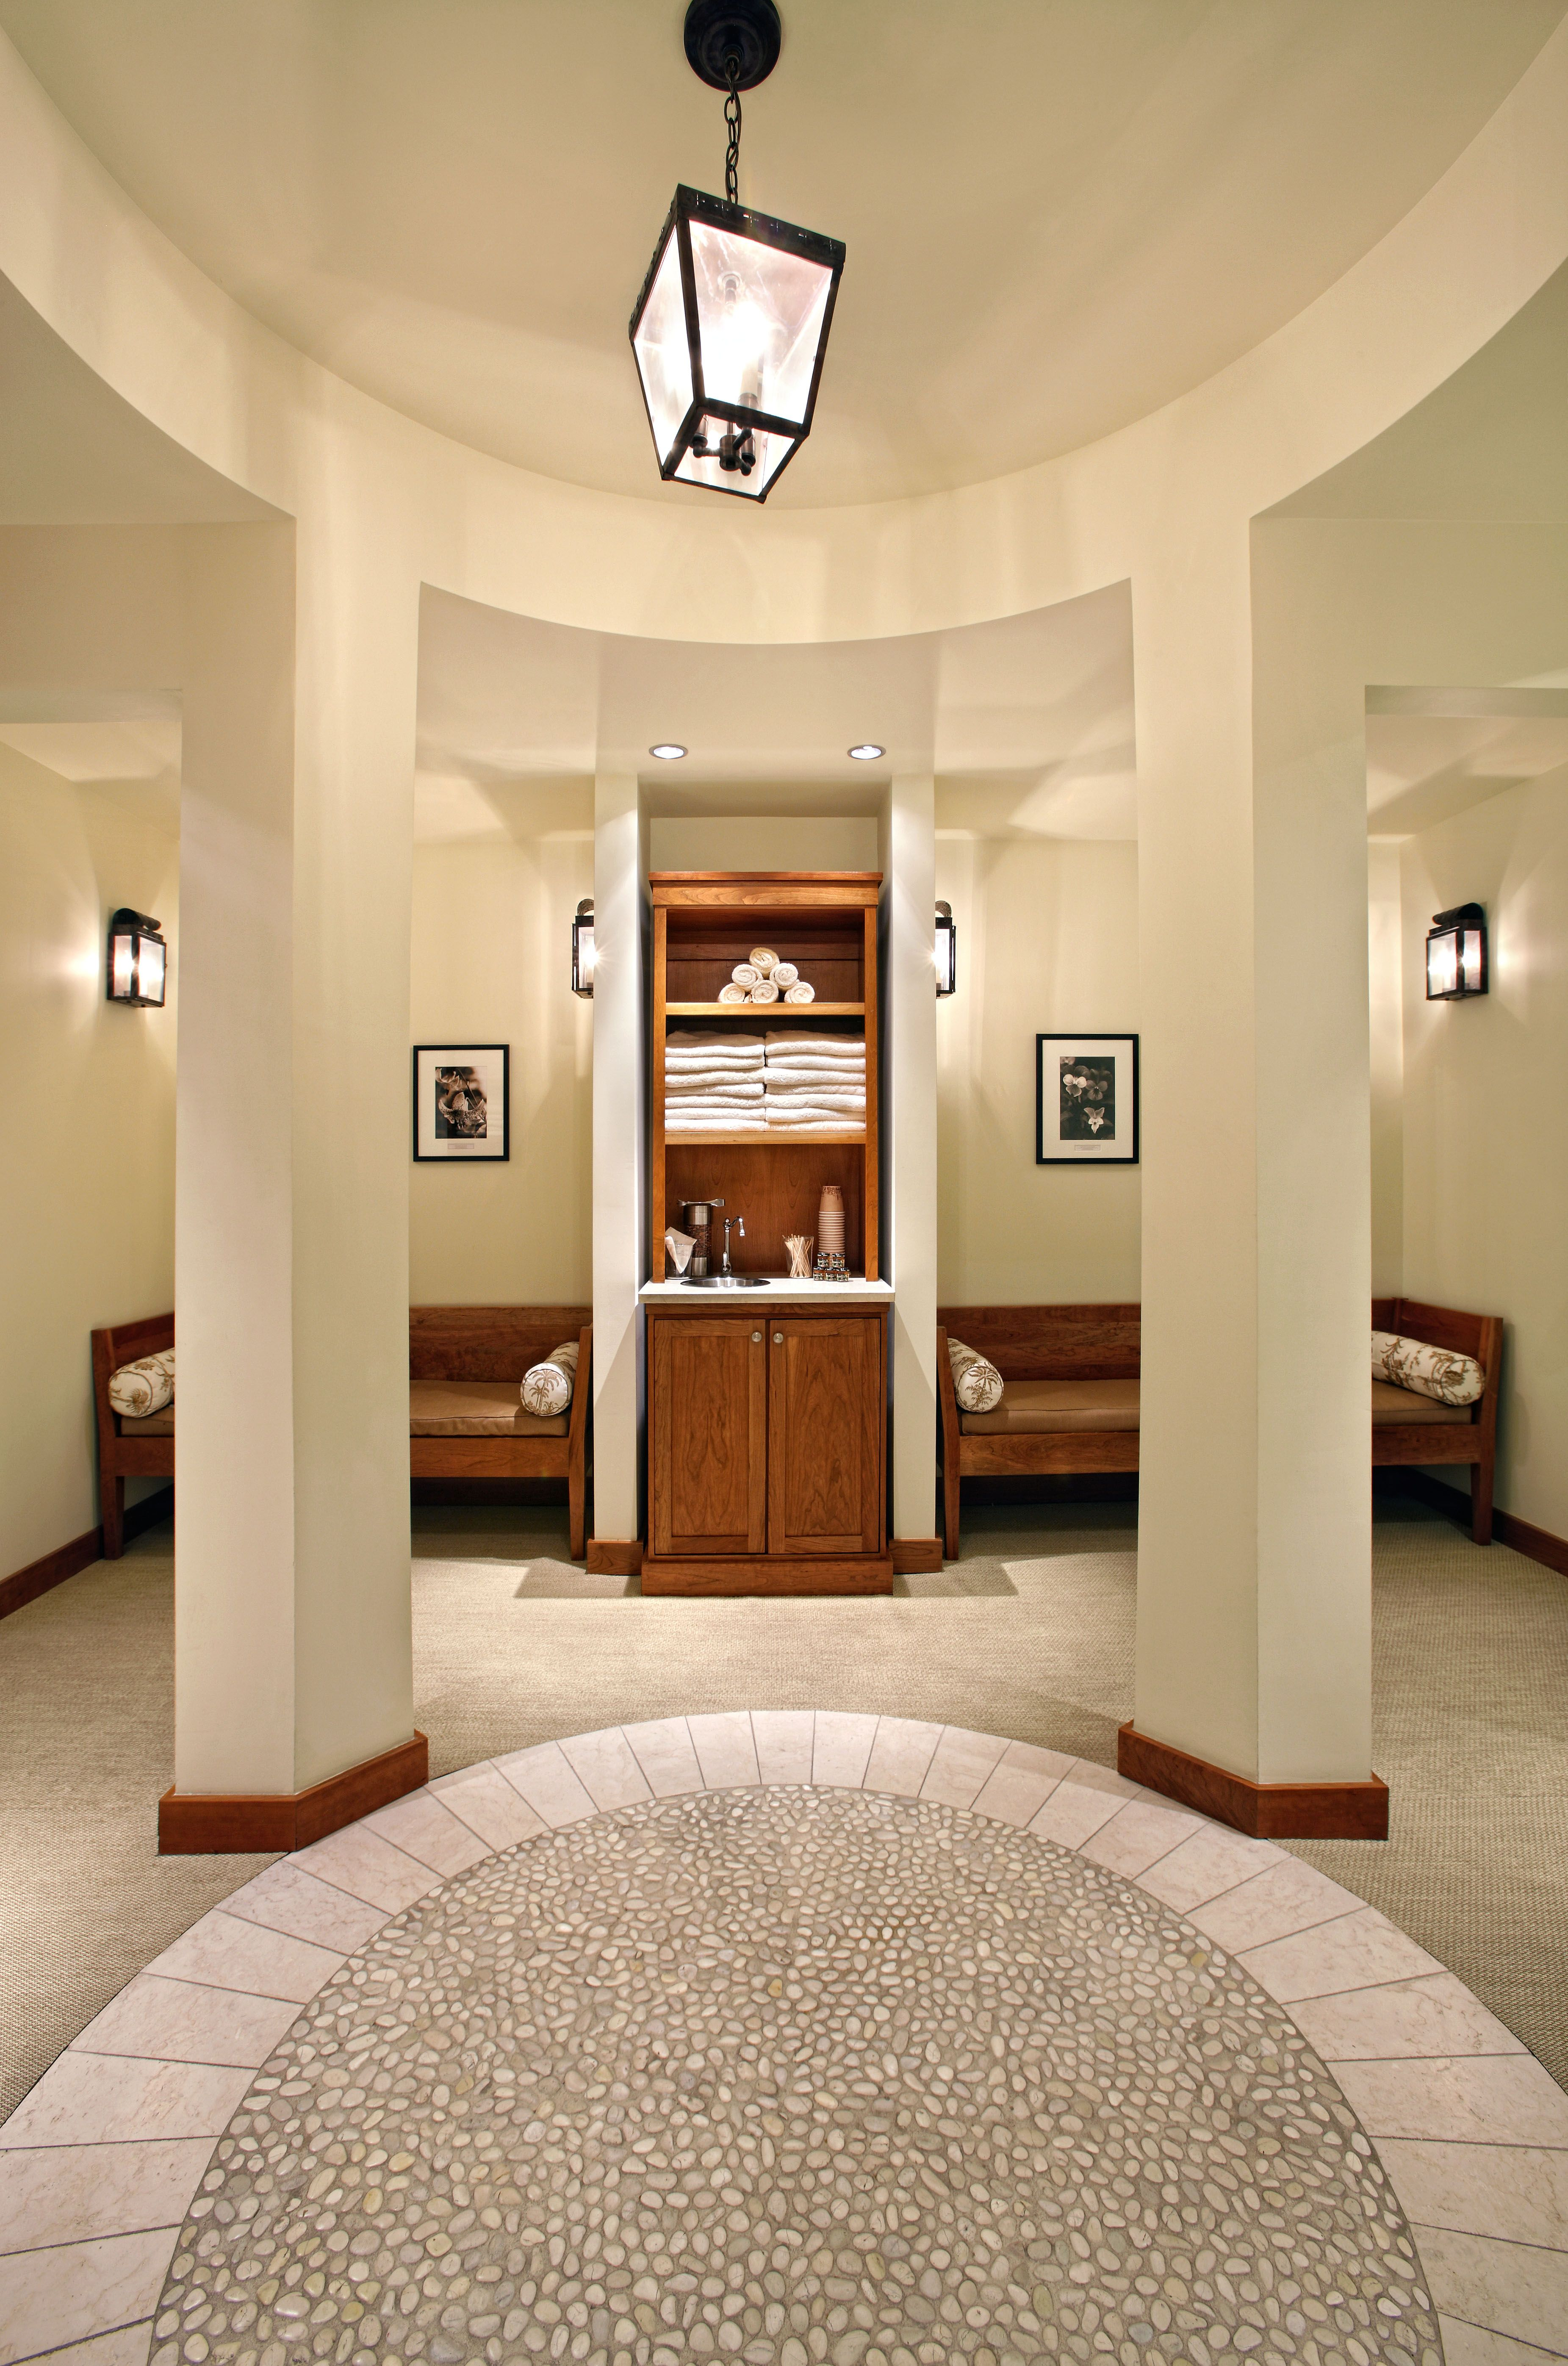 changing room plans google search spa pinterest. Black Bedroom Furniture Sets. Home Design Ideas